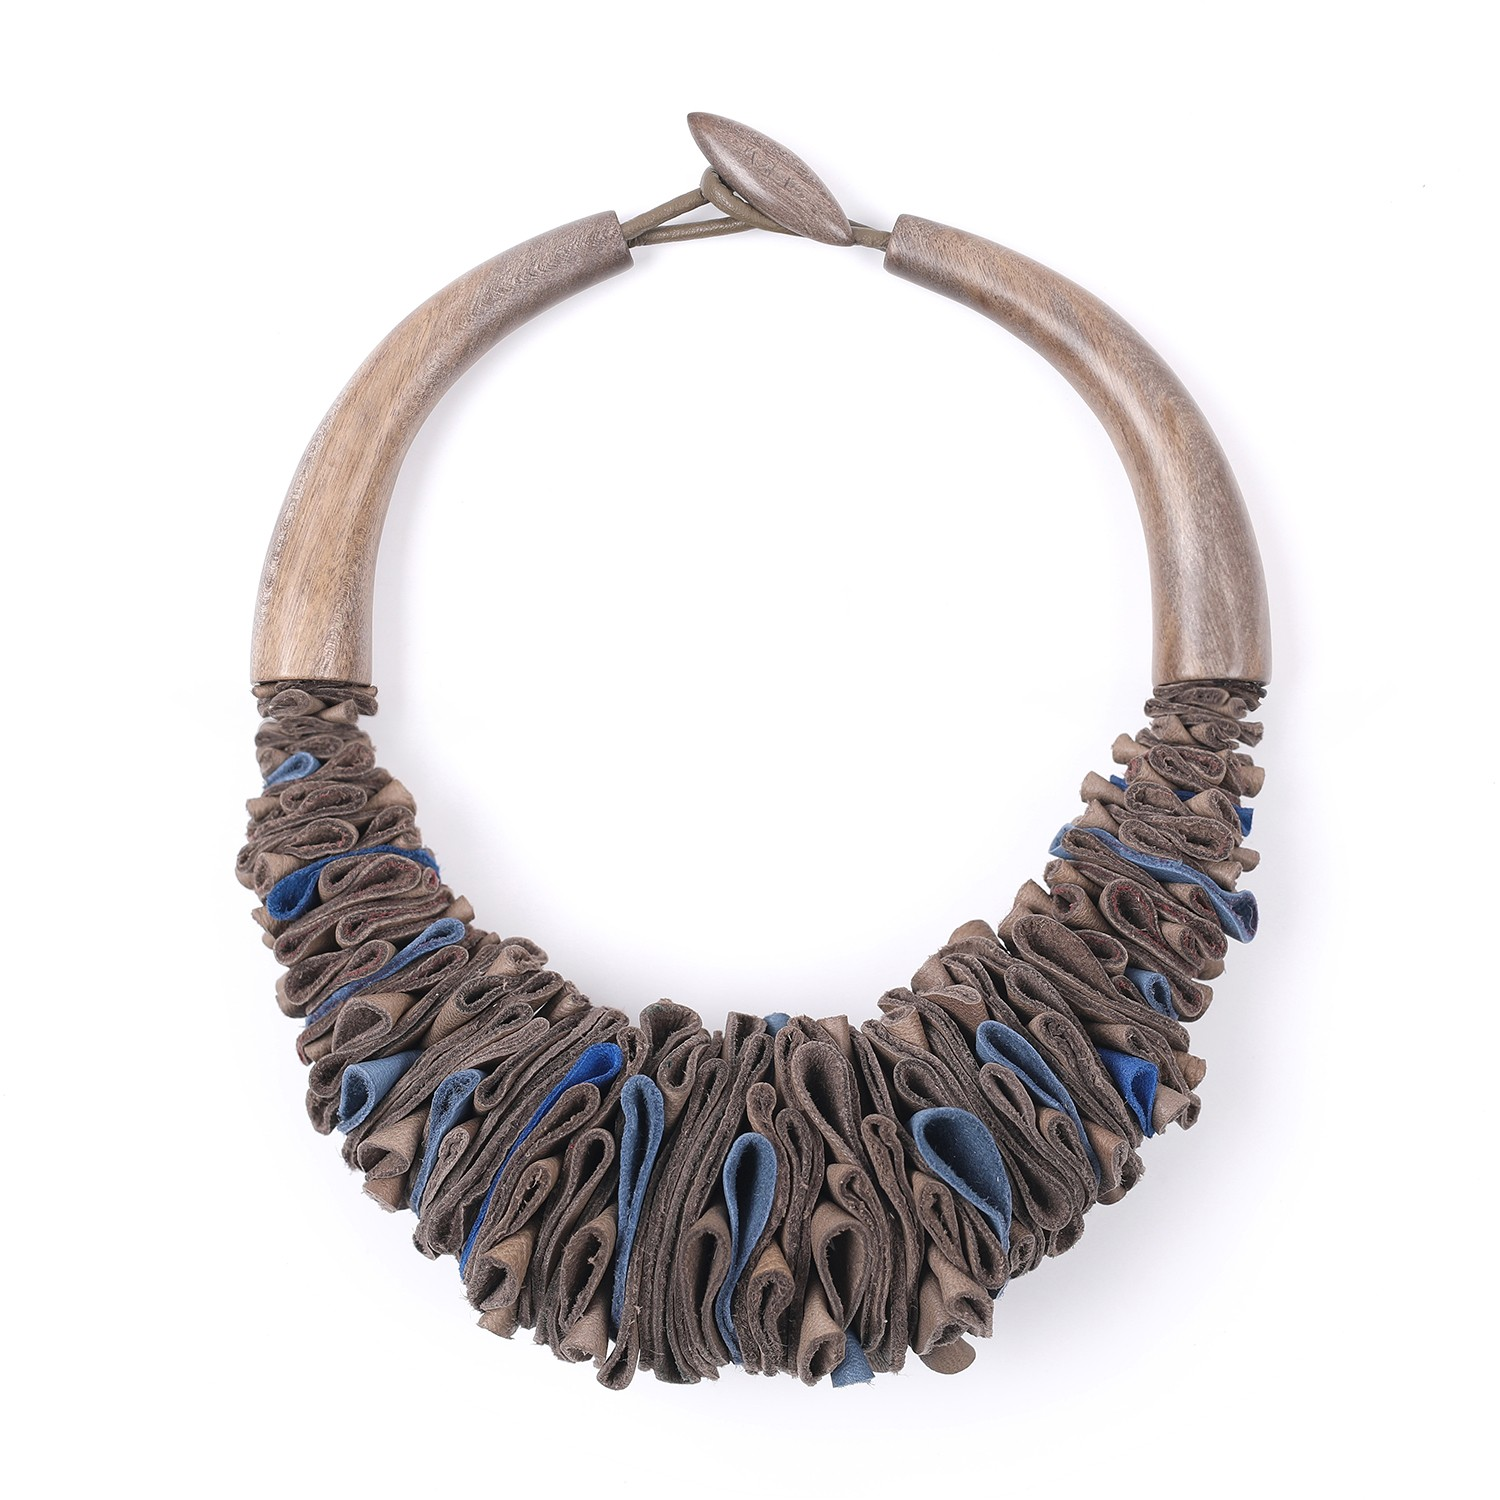 Necklace limited edition bleu grey leather